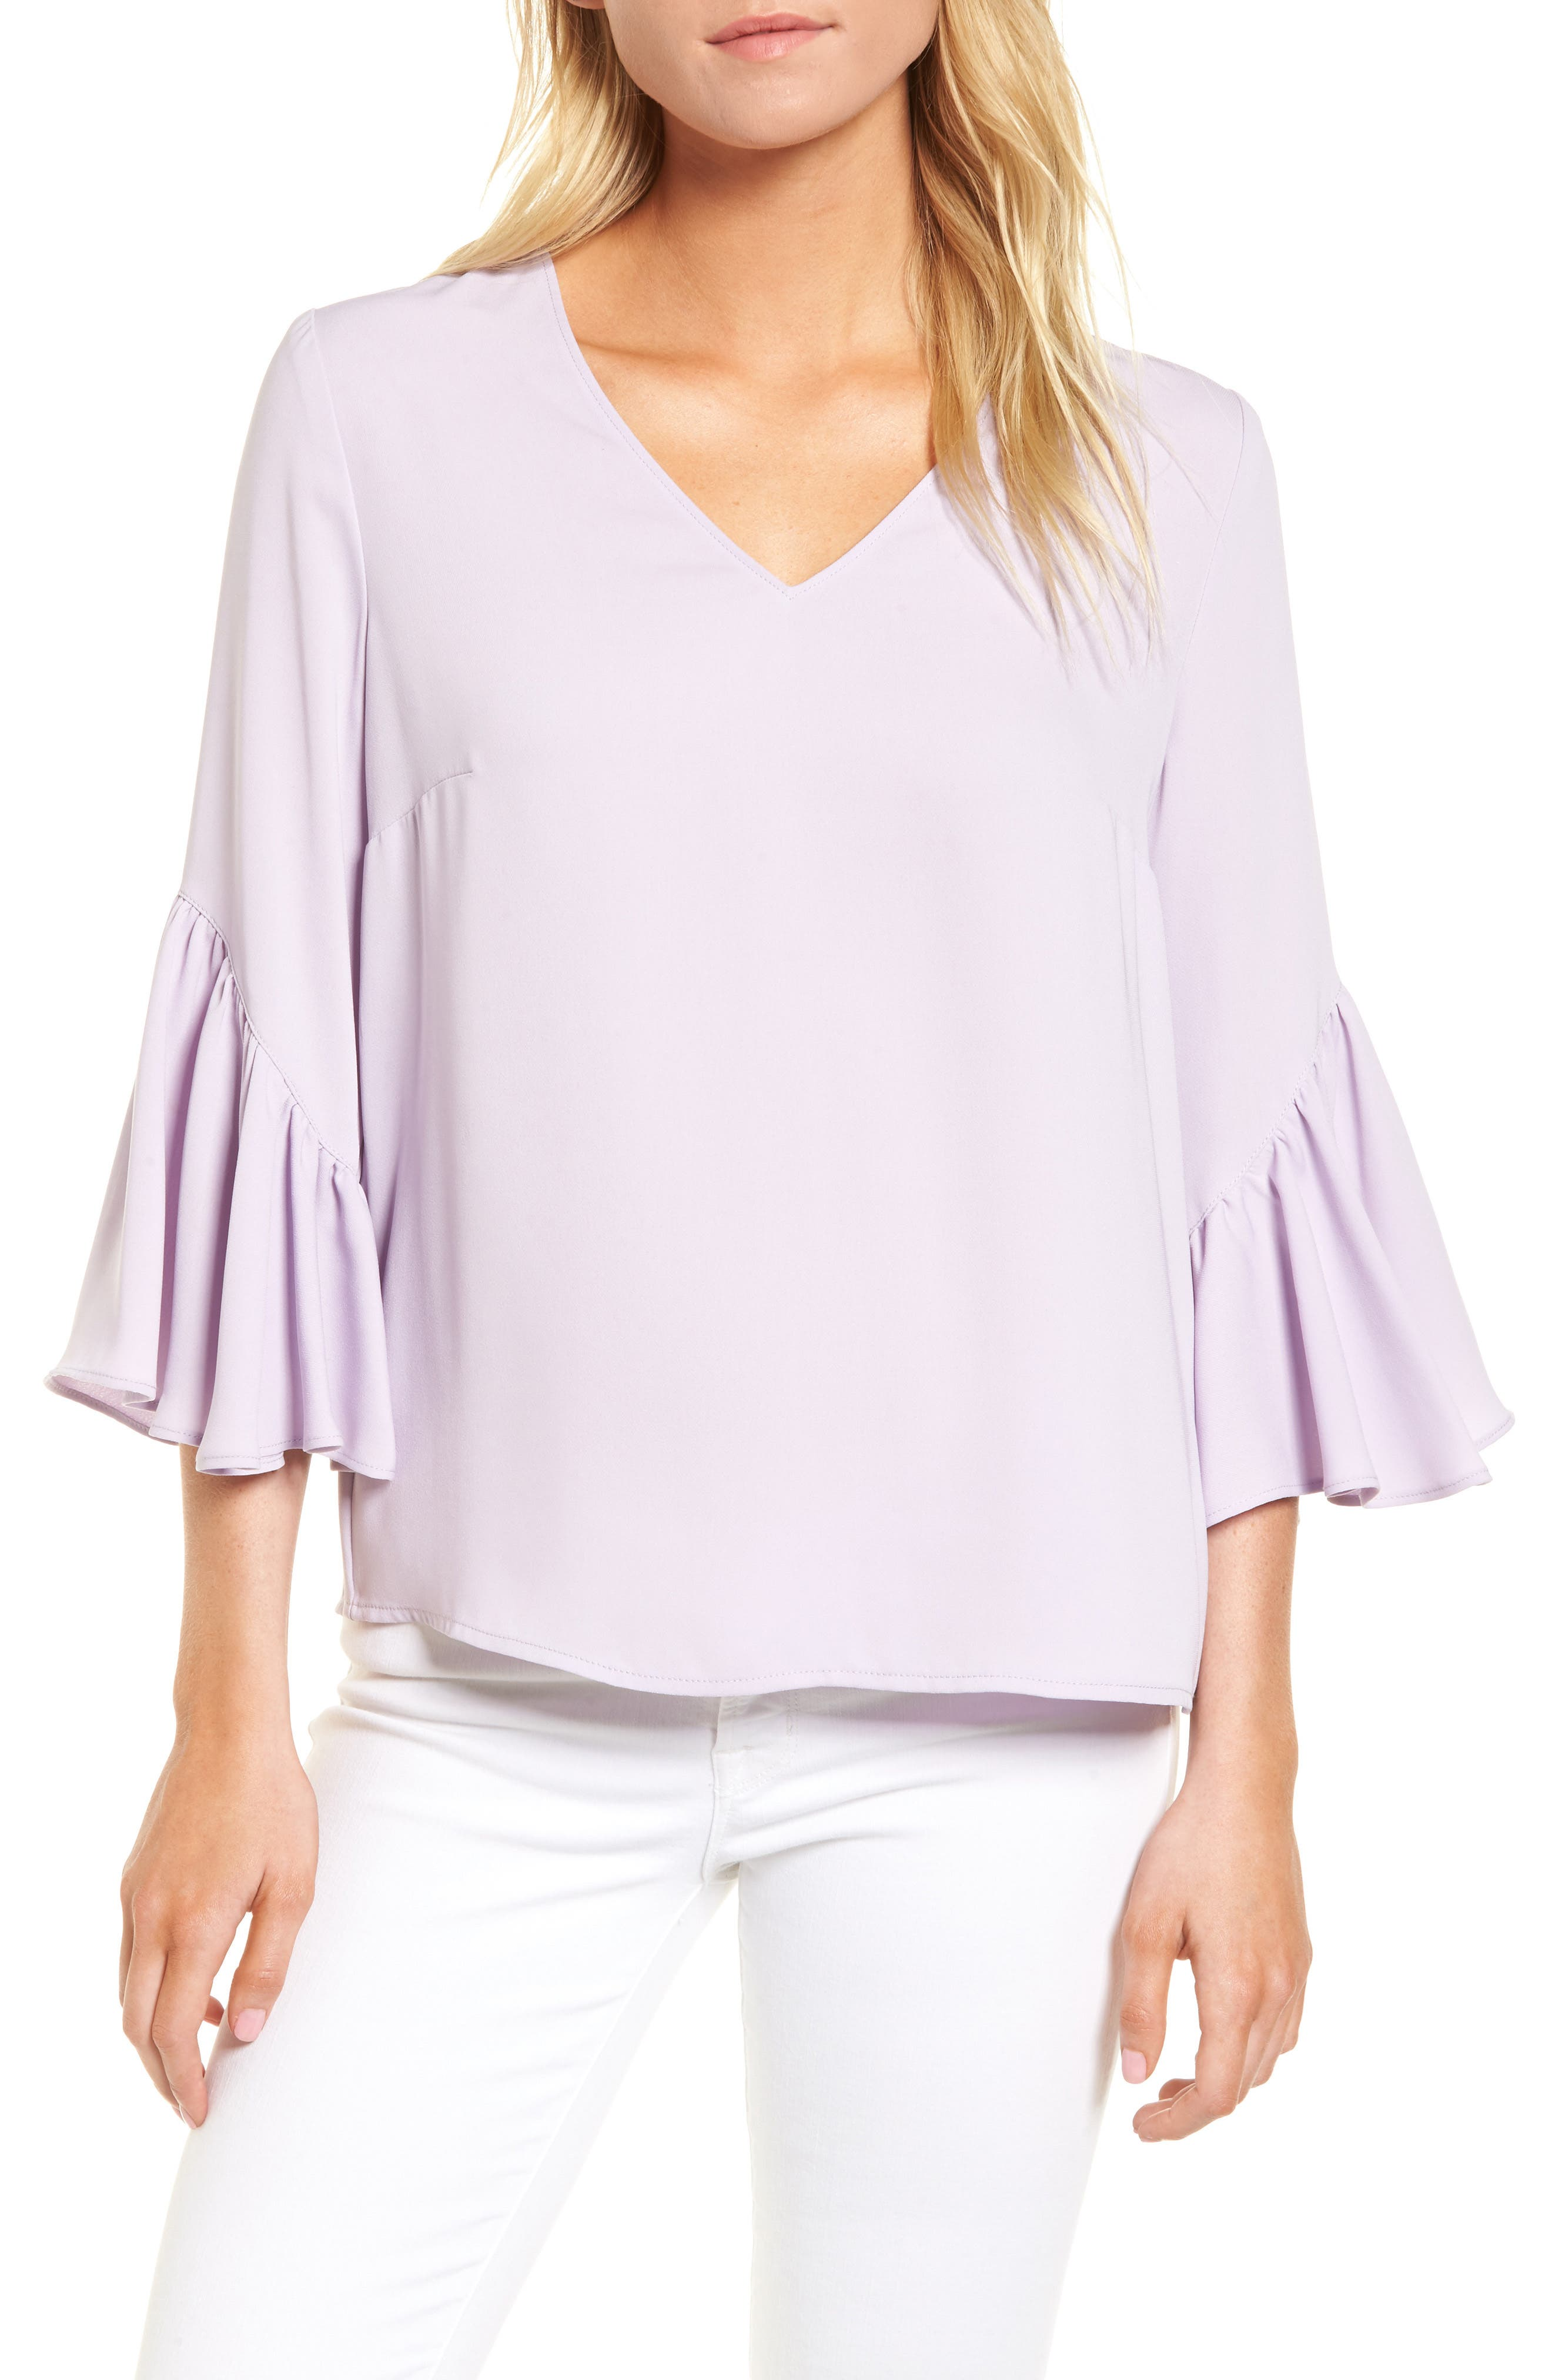 Main Image - Chelsea28 Asymmetrical Bell Sleeve Top